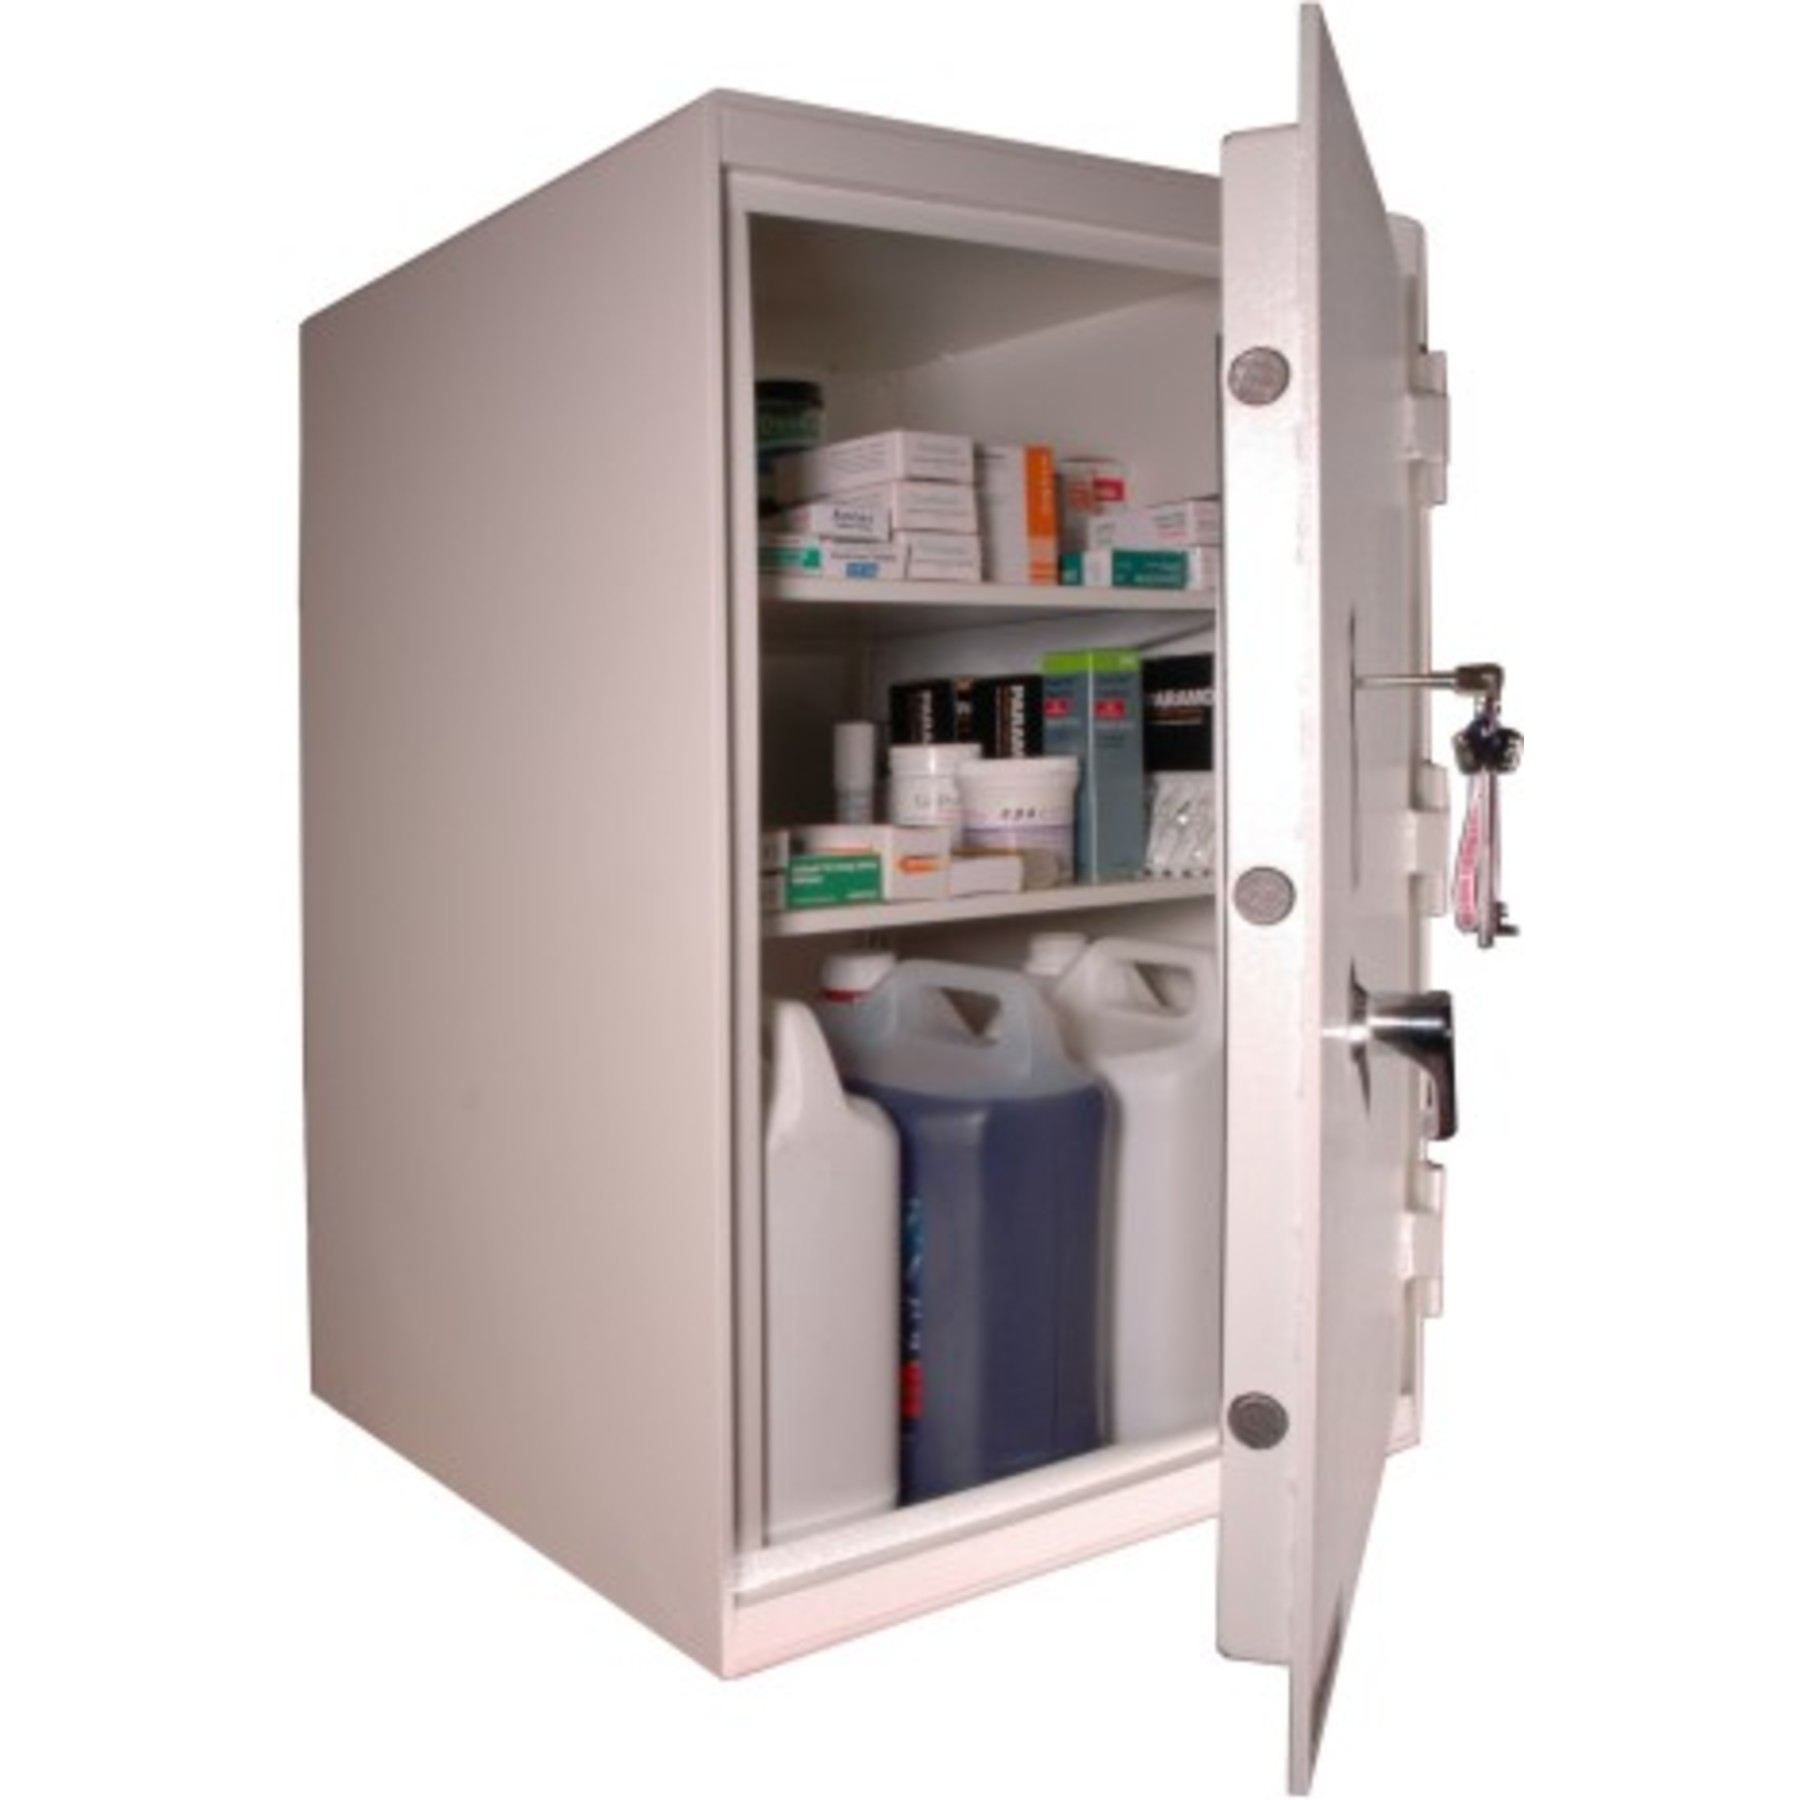 Pharmaceutical Storage Cabinets Hdc 470 Heavy Duty Drugs Storage Cabinet For Pharmacies All